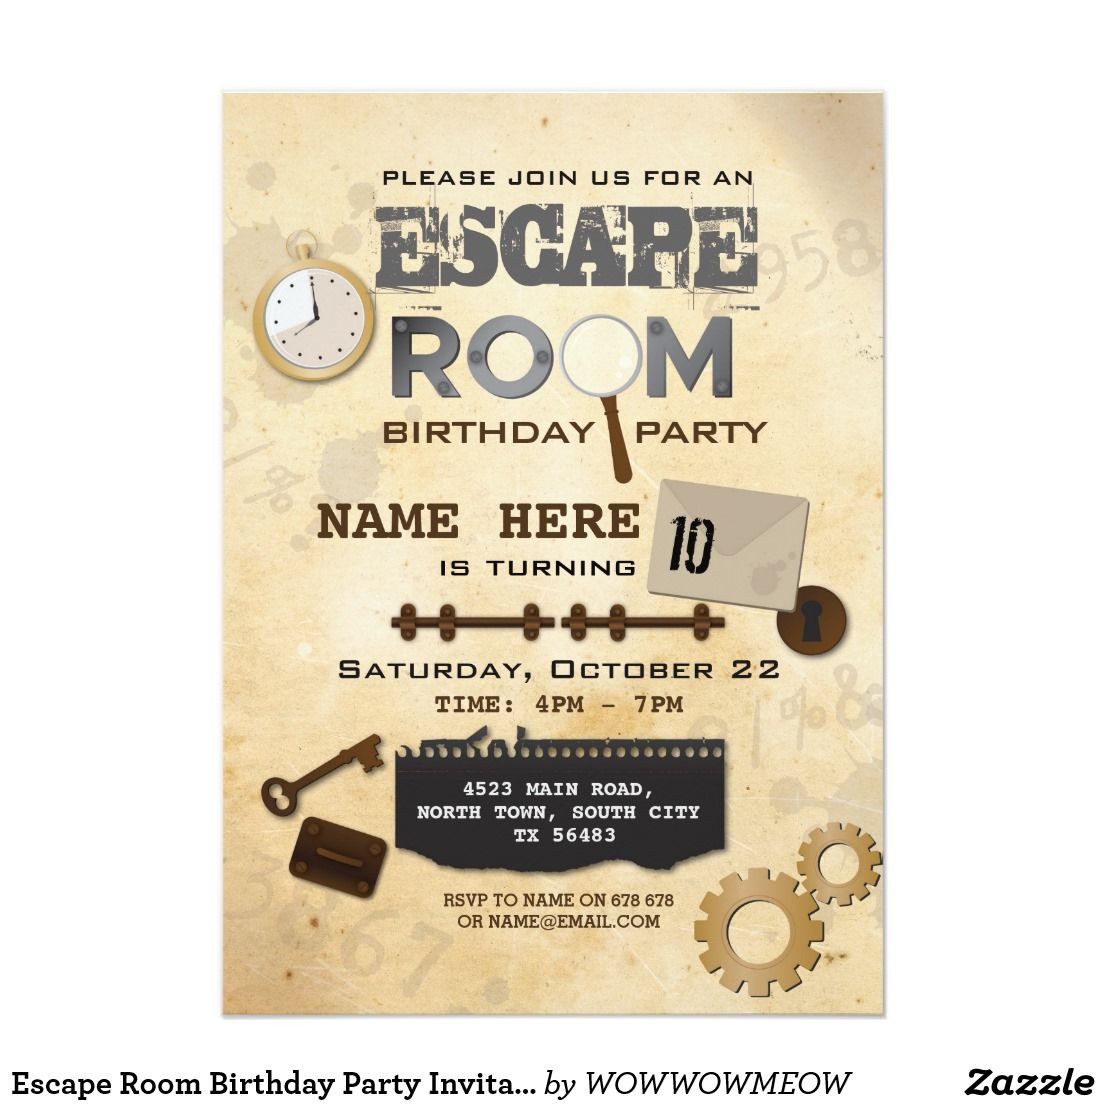 Escape Room Birthday Party Invitation Clues Spy  Zazzle.com